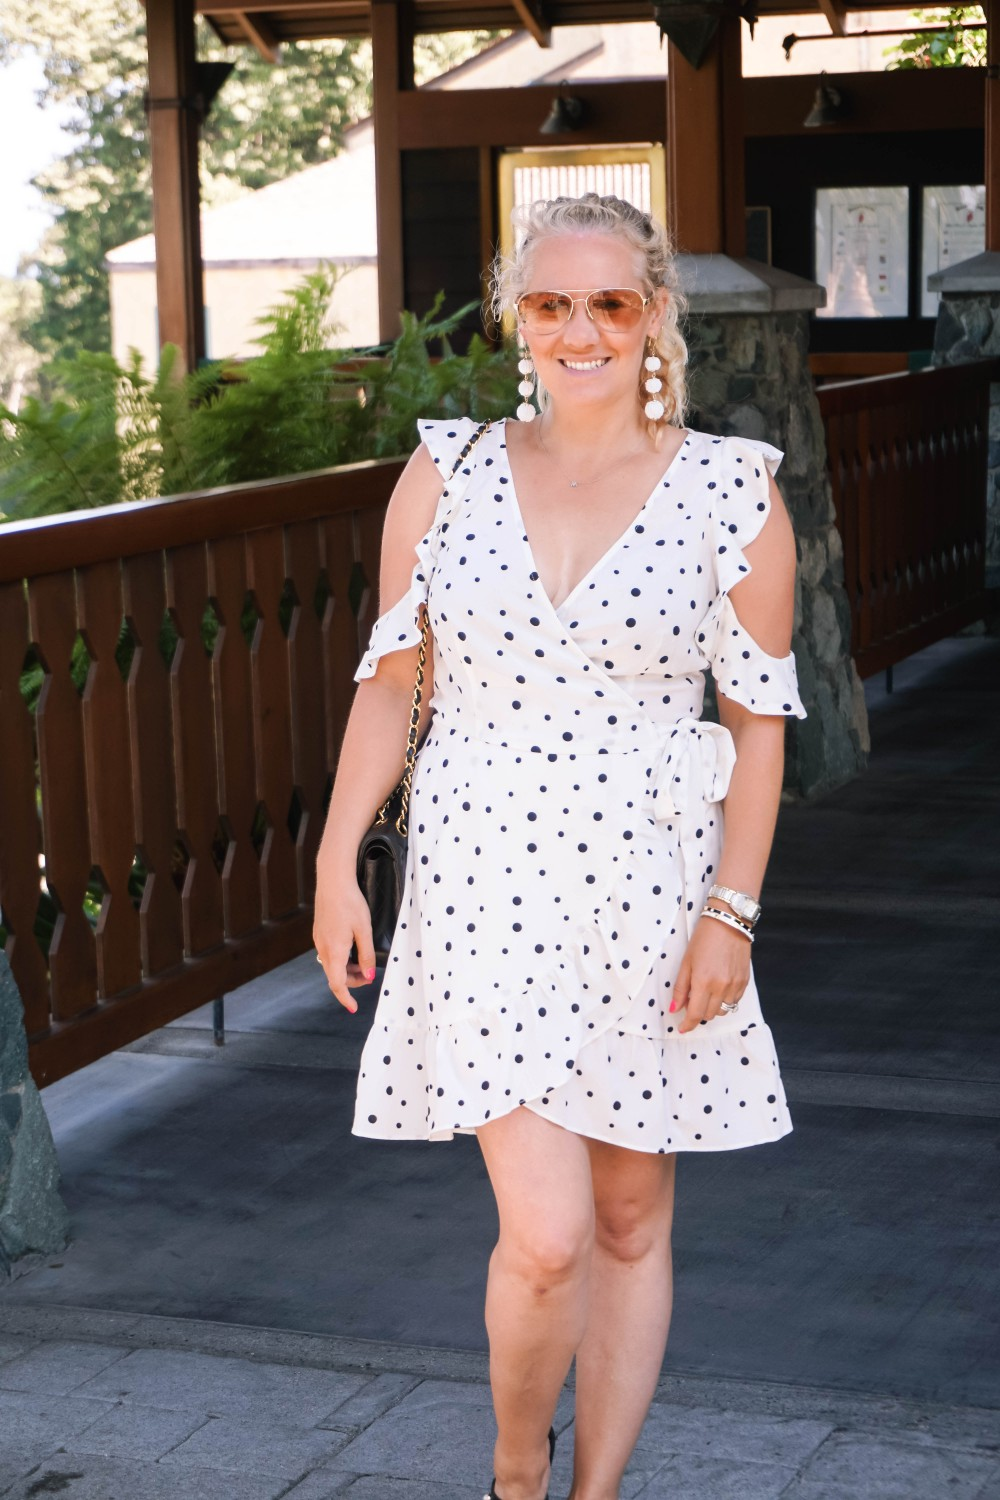 Three Ways to Wear Polka Dots-Polka Dot Outfits-Outfit Inspiration-Borrowed by Design-Polka Dot Wrap Dress-Faux Pearl Sandals-Have Need Want 10